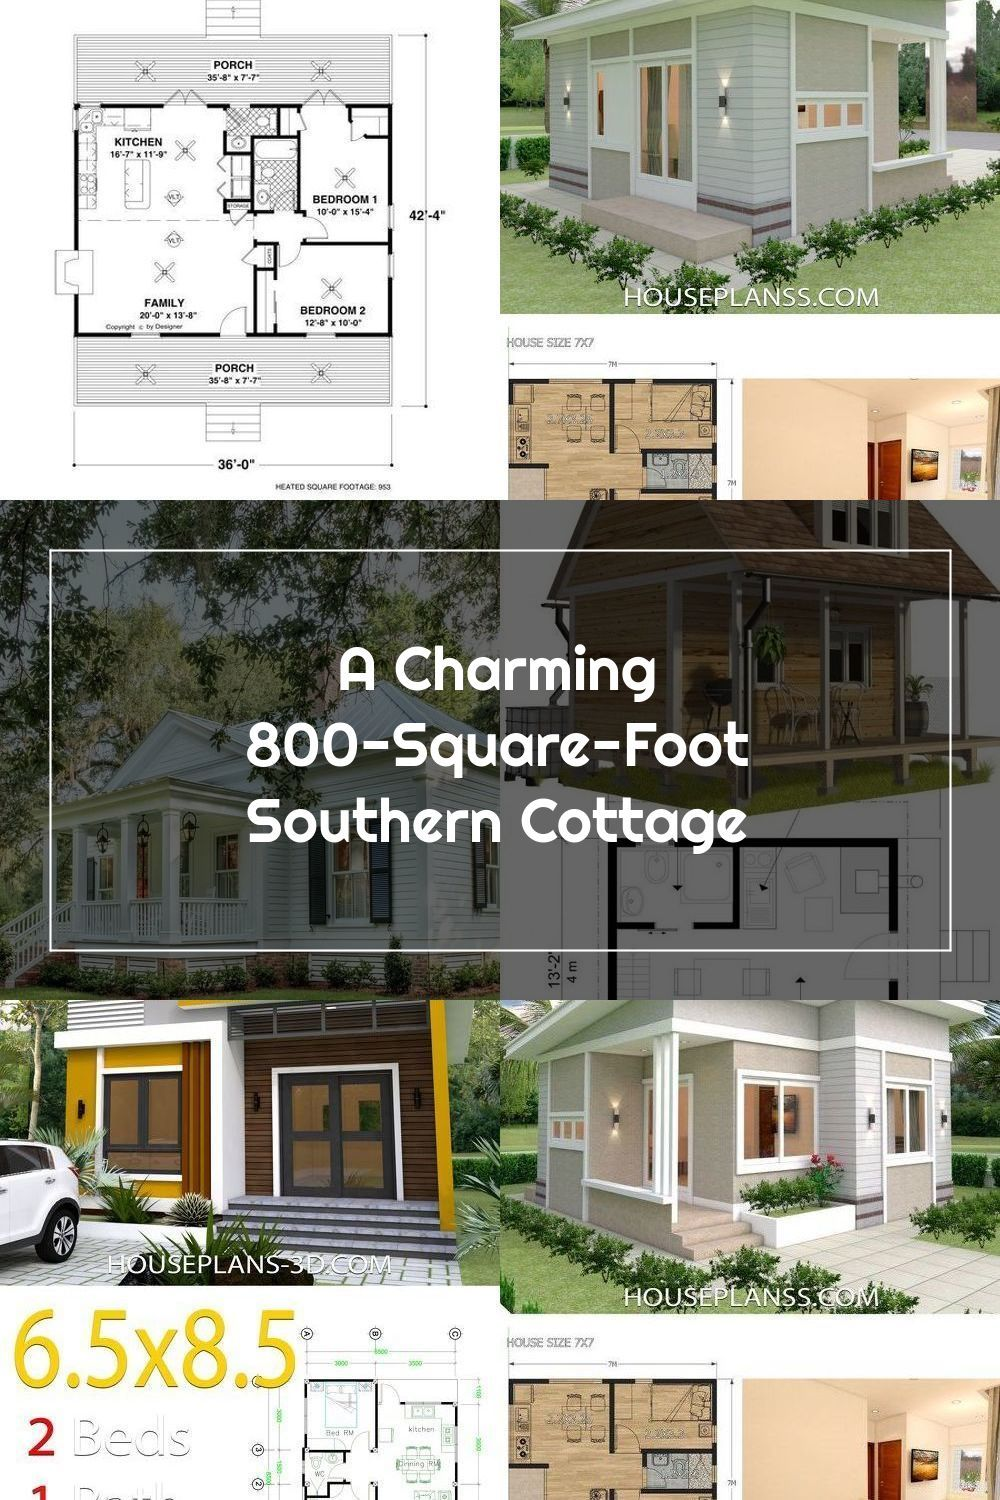 A Charming 800 Square Foot Southern Cottage Blue And White Home In 2020 Southern Cottage Small House Design White Houses